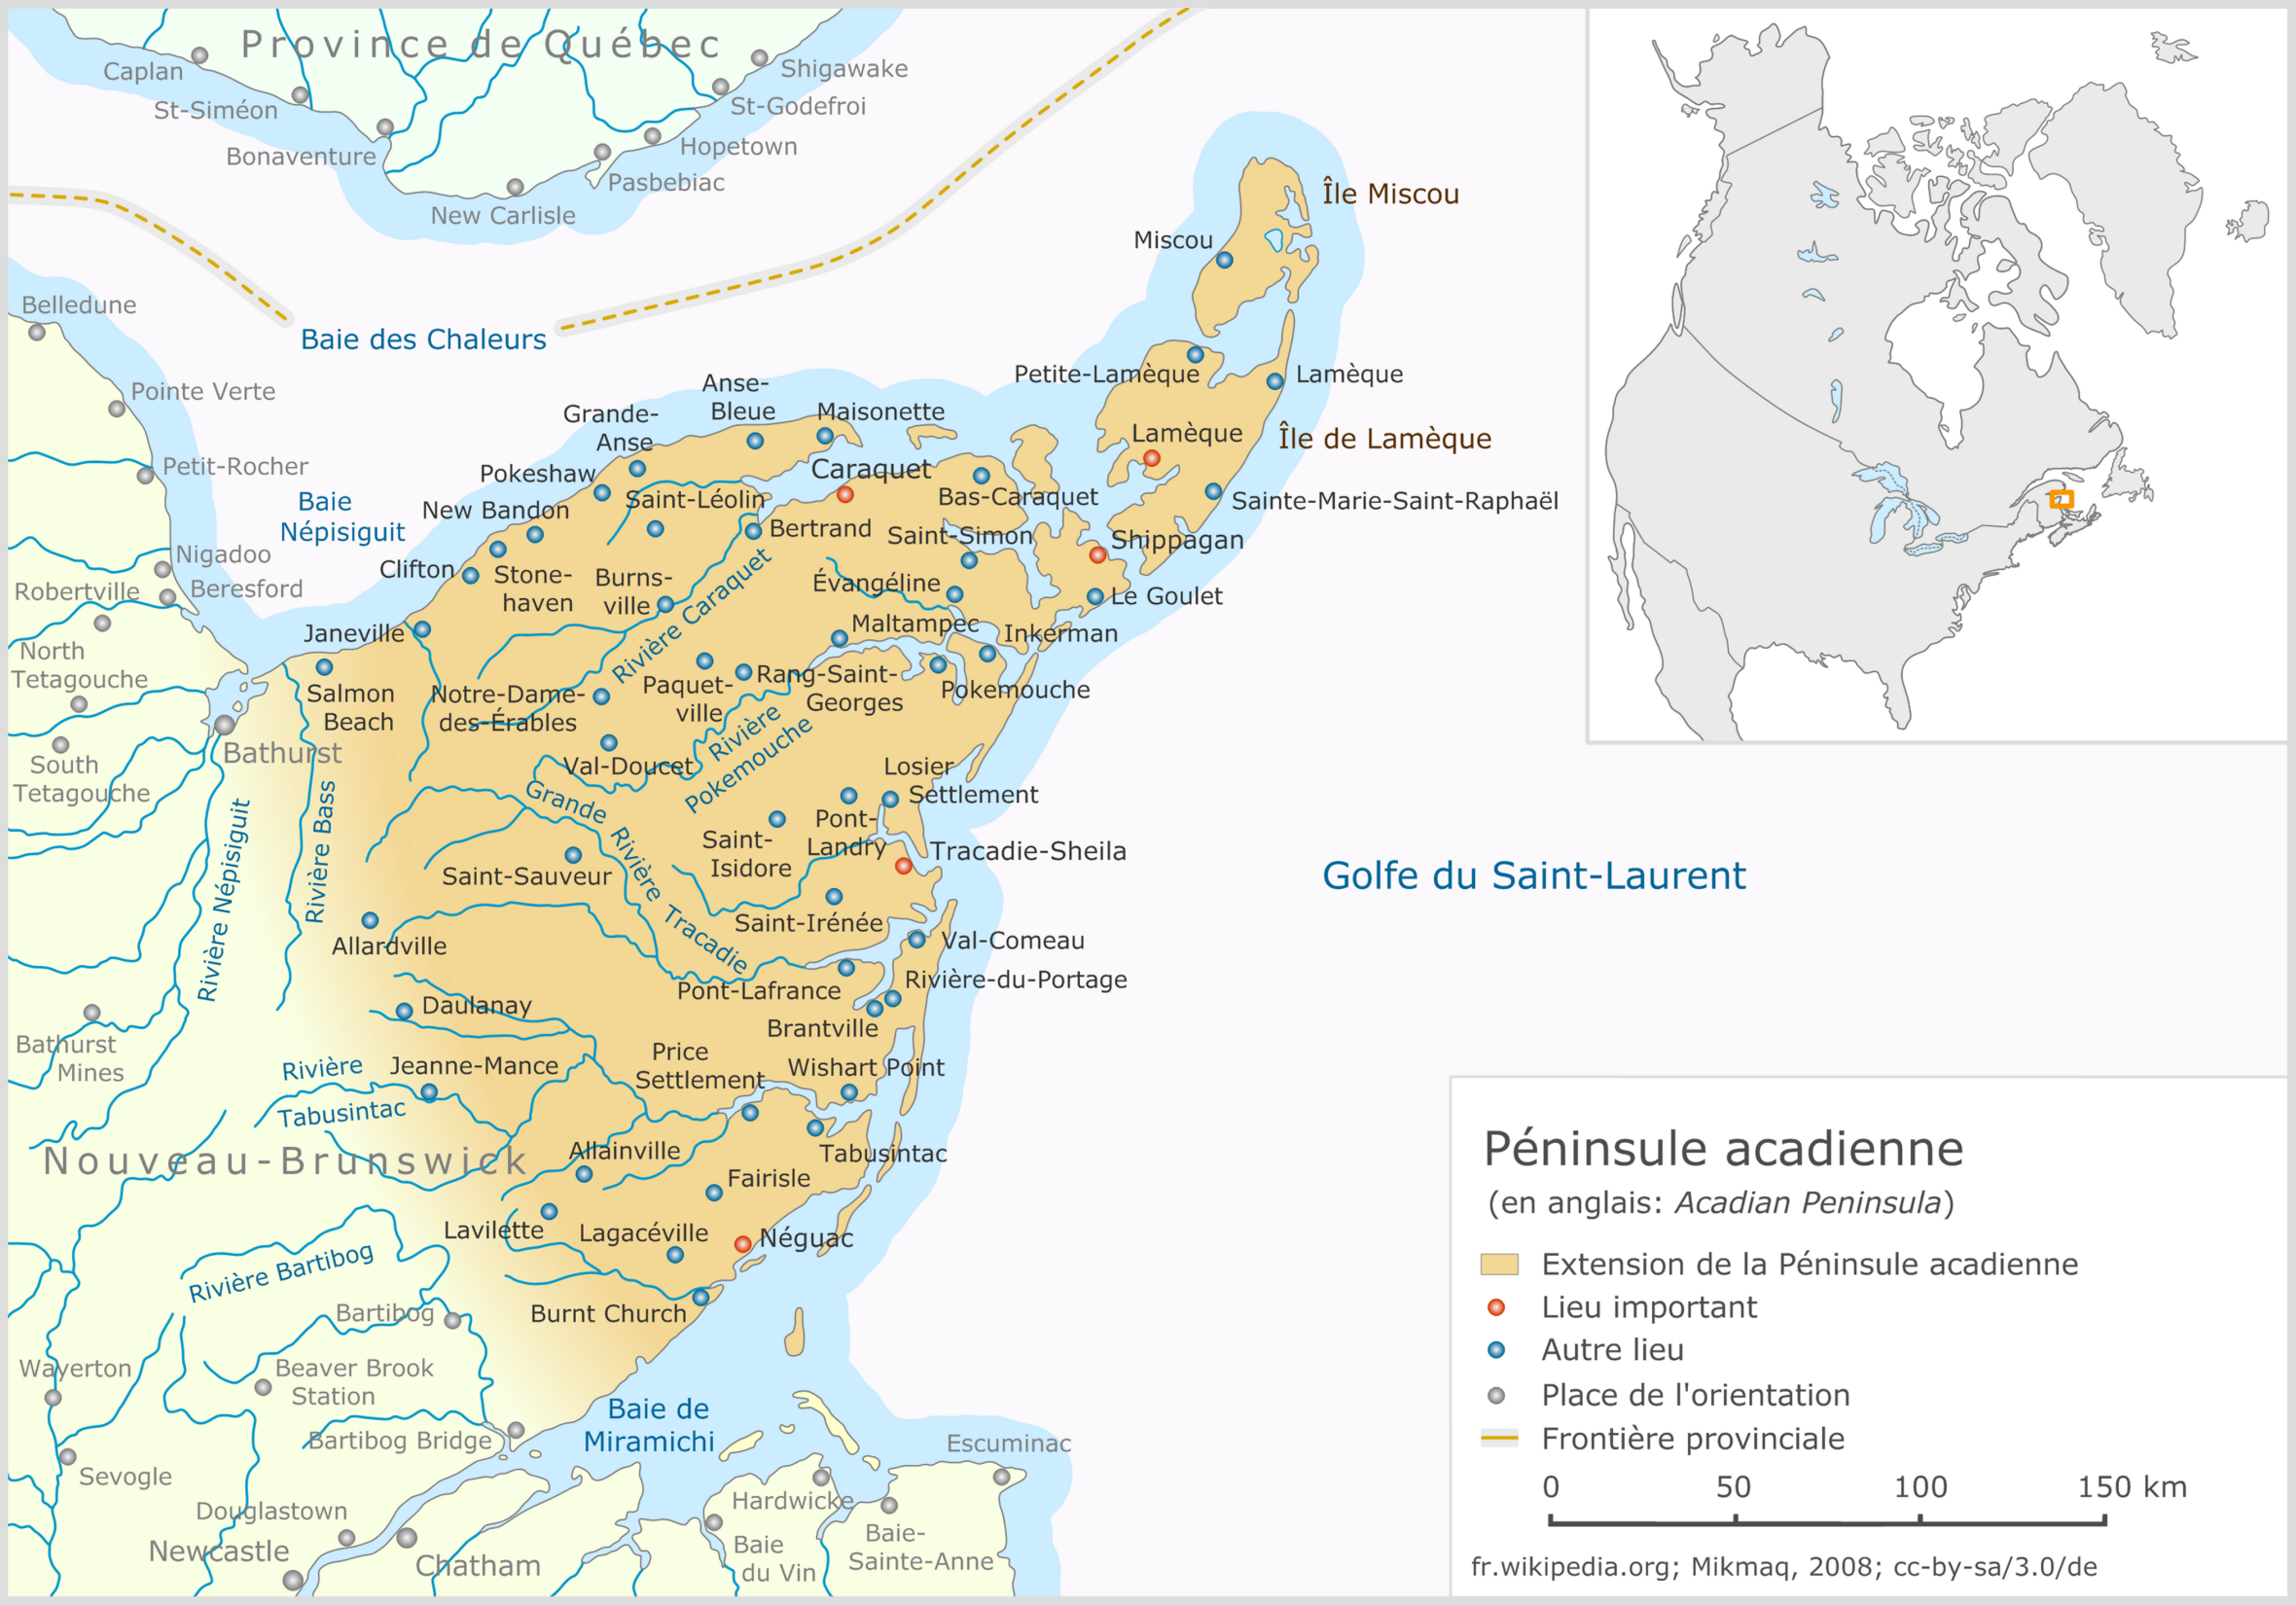 http://upload.wikimedia.org/wikipedia/commons/7/73/Peninsule-acadienne.png